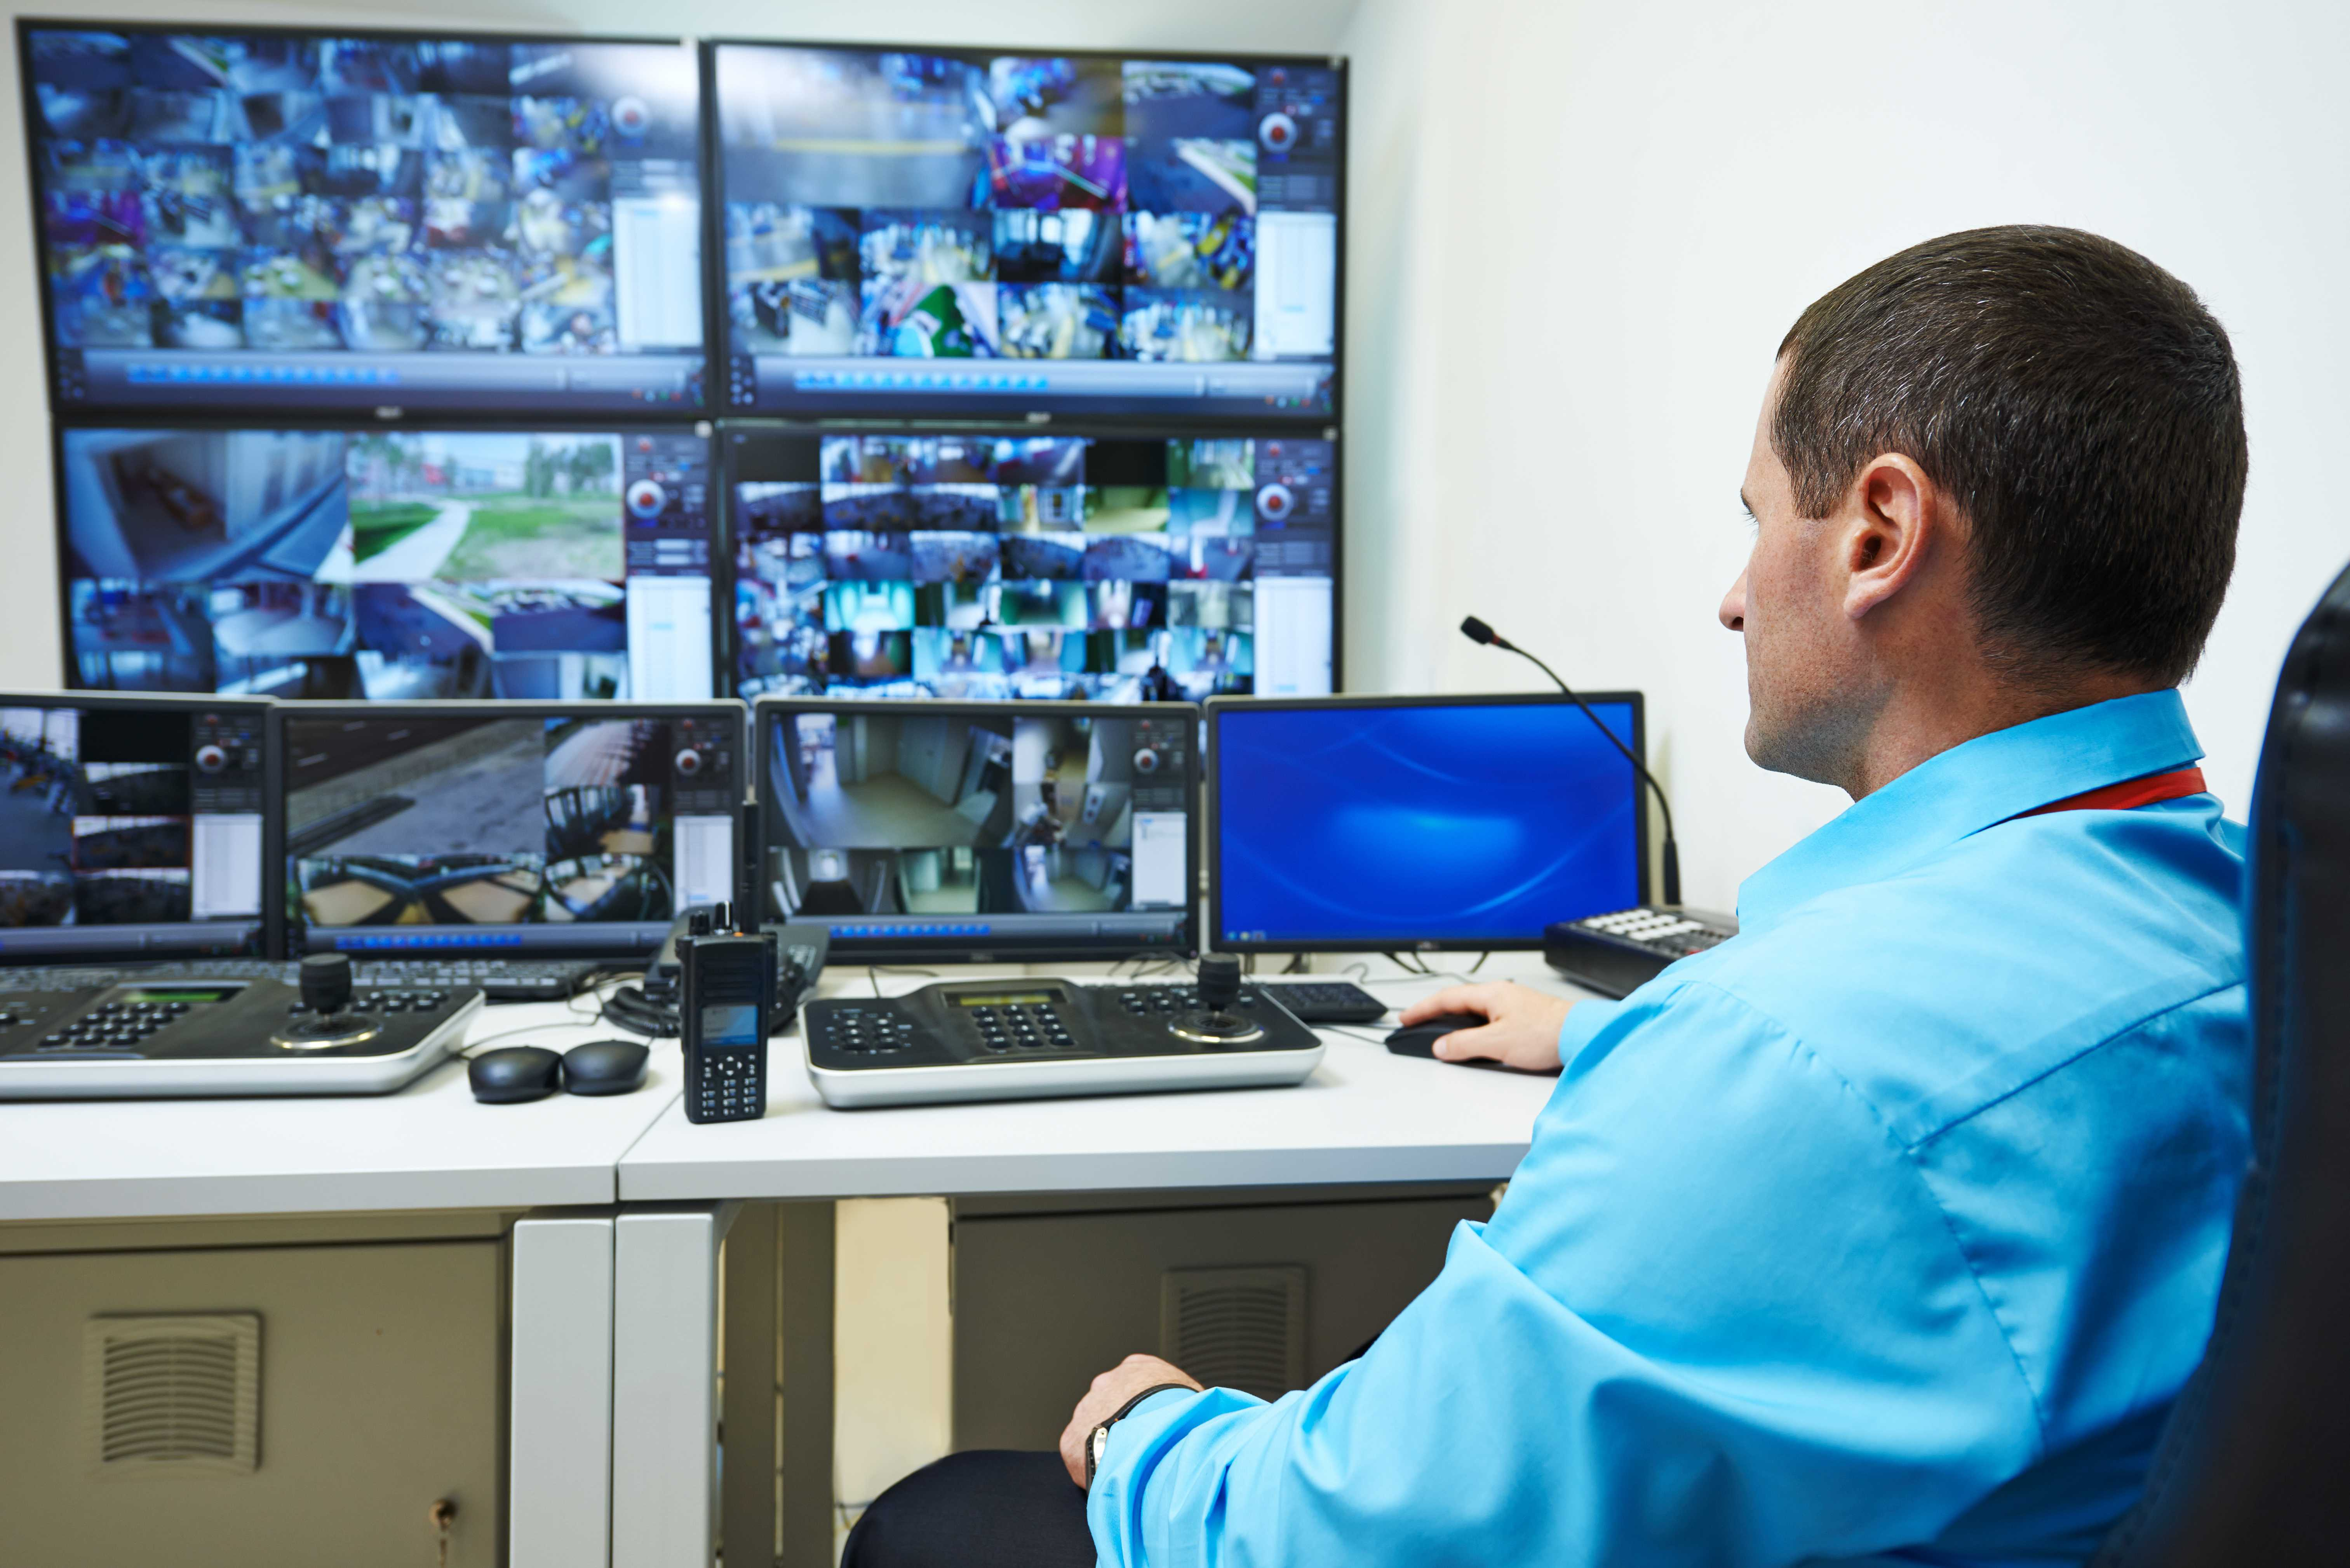 Going into the Alarm Monitoring Business